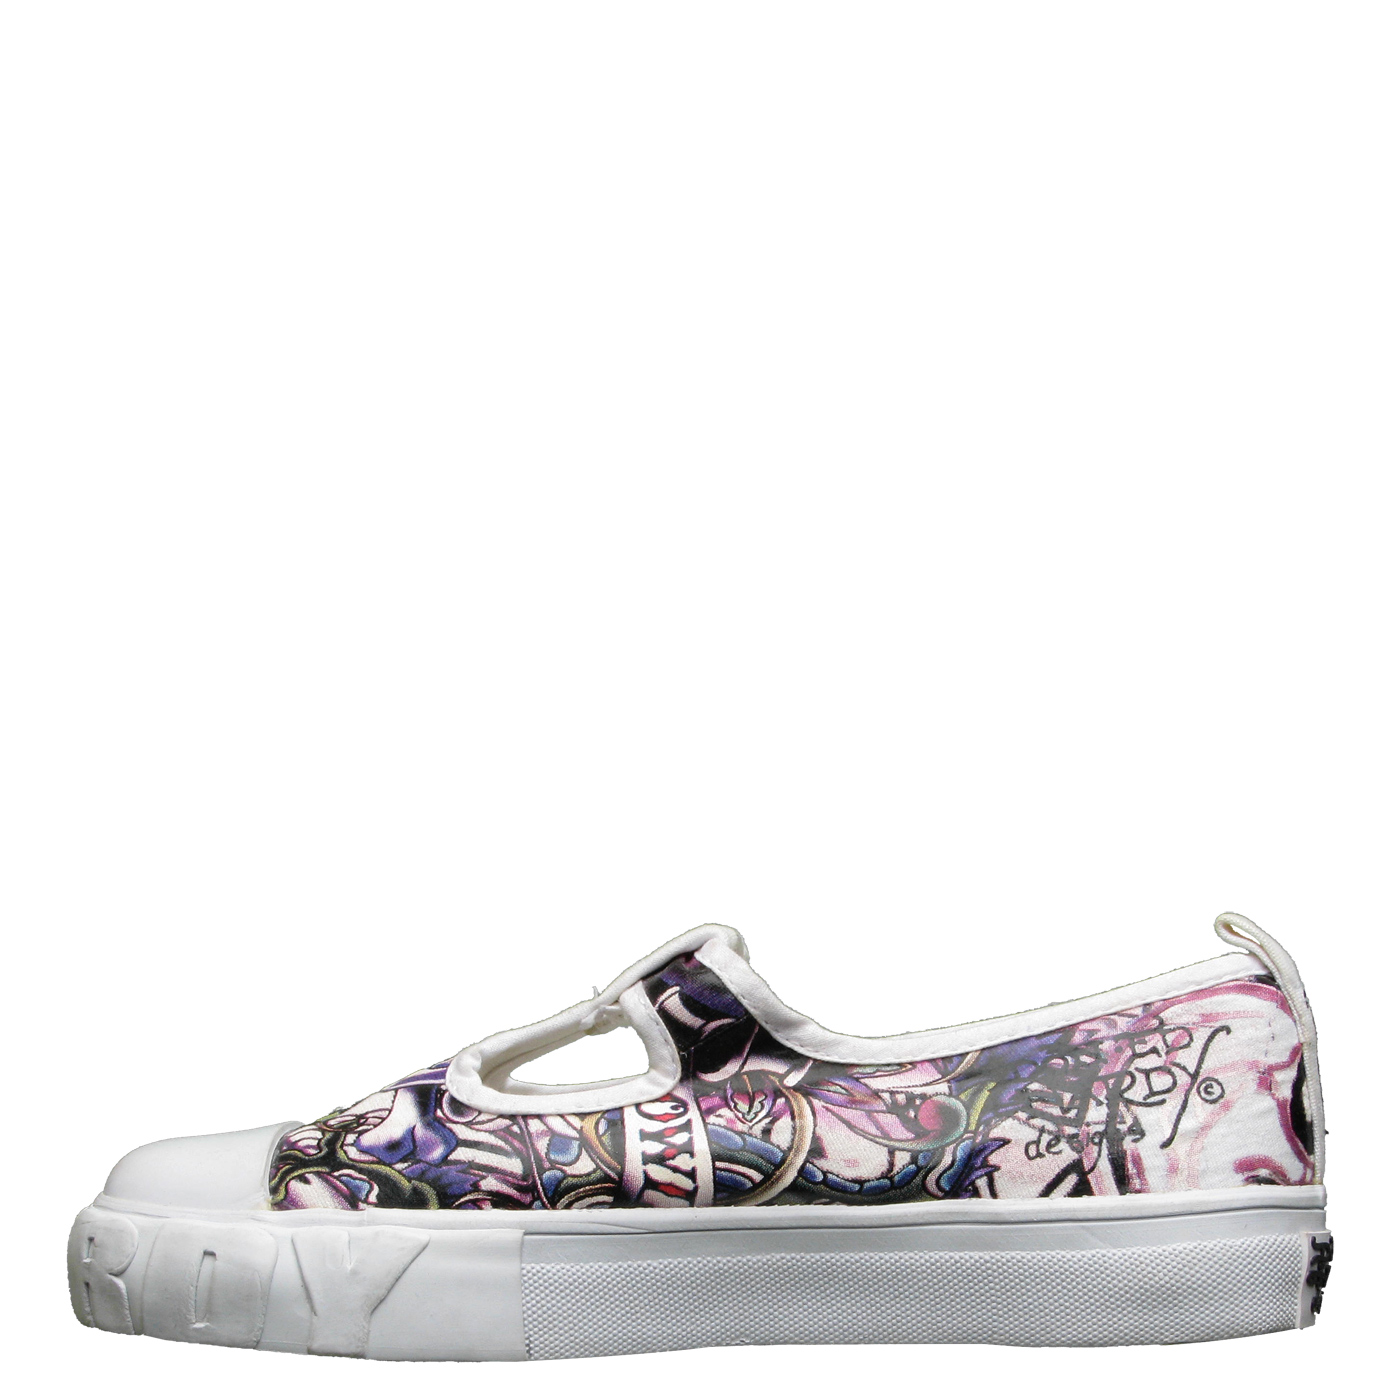 Ed Hardy Candyland Shoe for Kids Girls - White